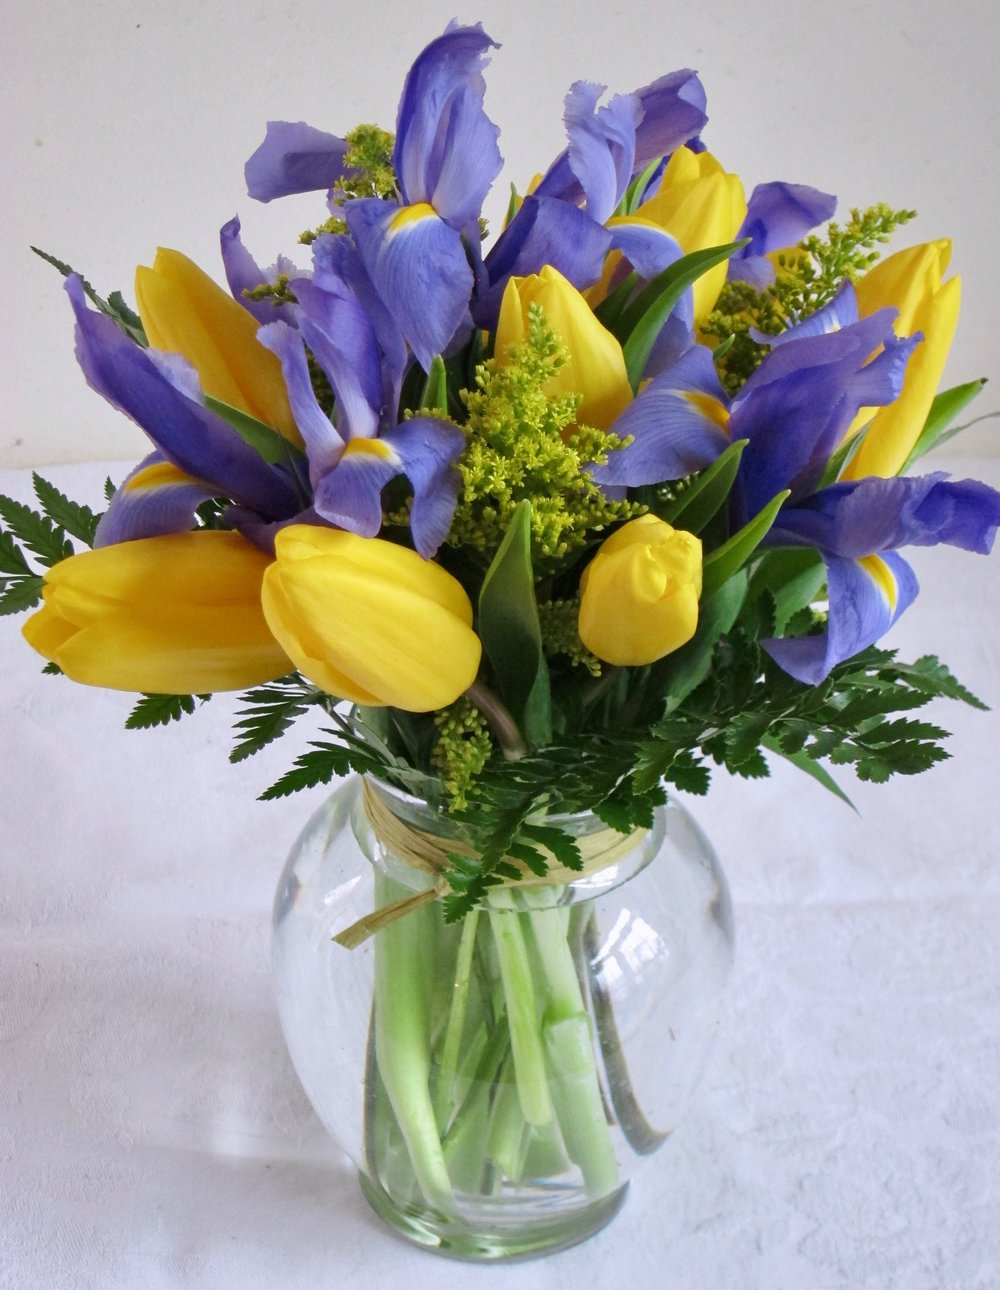 SHORT AND SWEET Iris and tulips accented with solidago in a low ginger vase, $40.